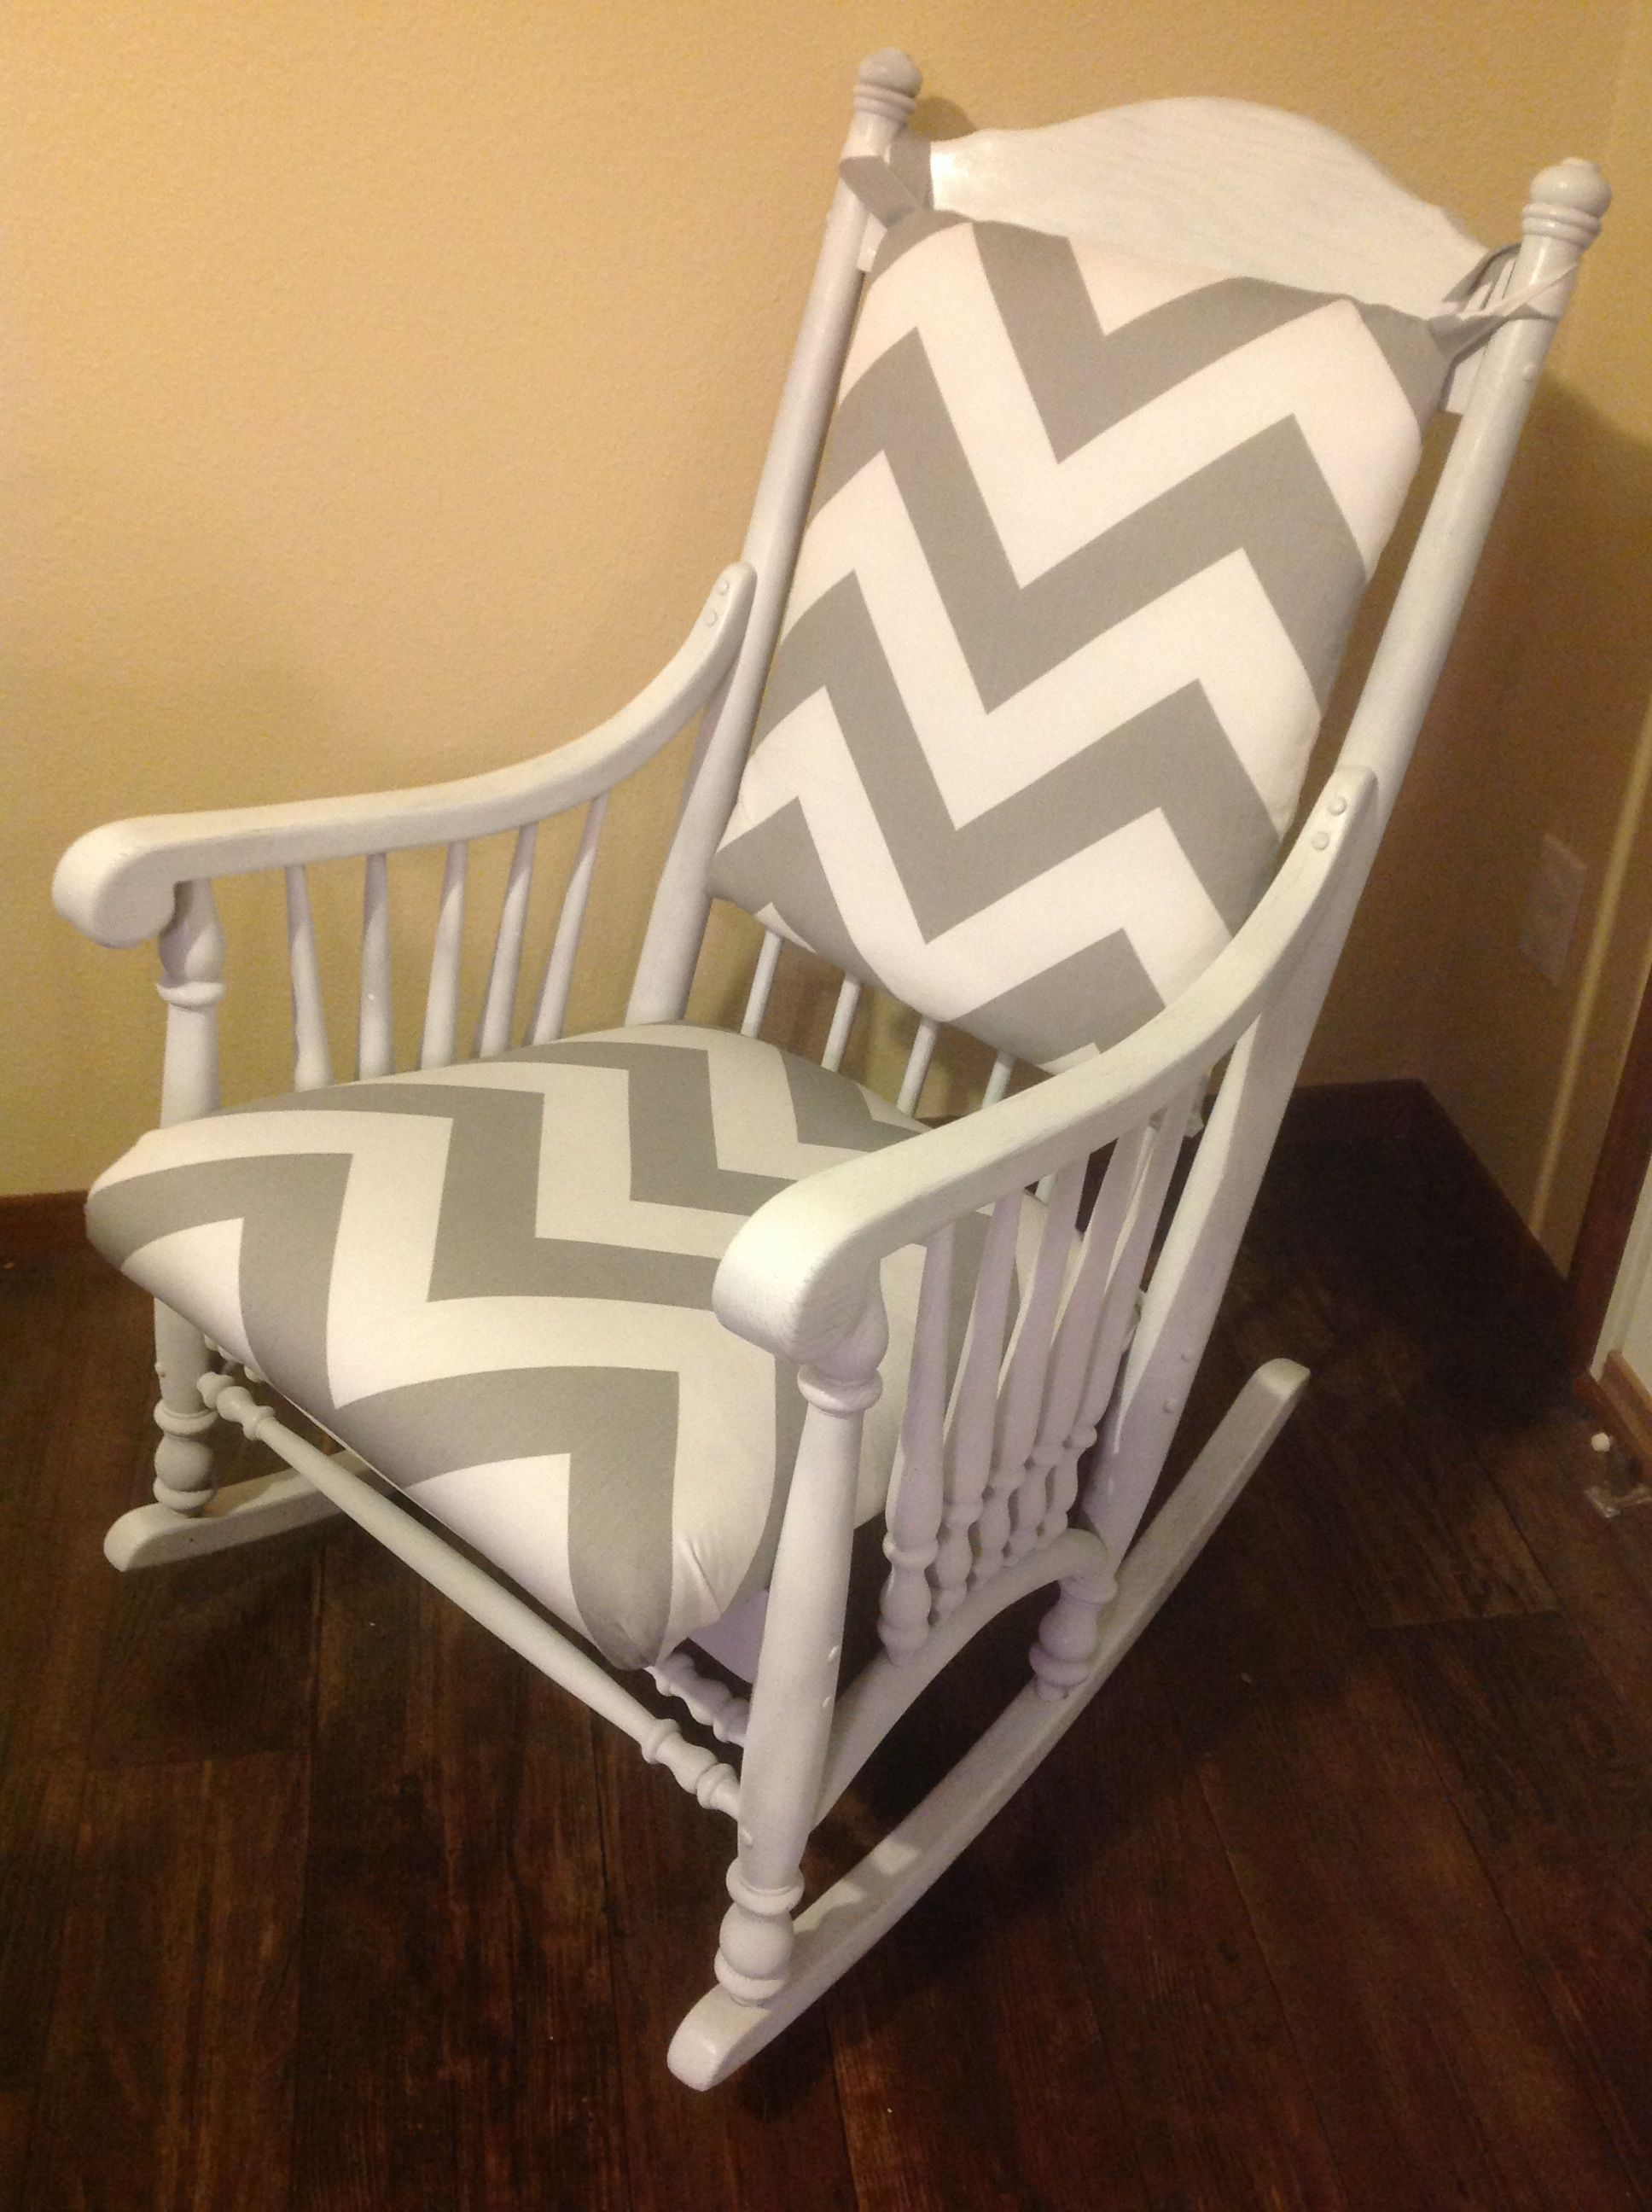 Just Refinished This Cute Rocking Chair With A White Wash Paint And Wide Gray Chevron Fabric Rockin Rocking Chair Nursery Rocking Chair Rocking Chair Makeover